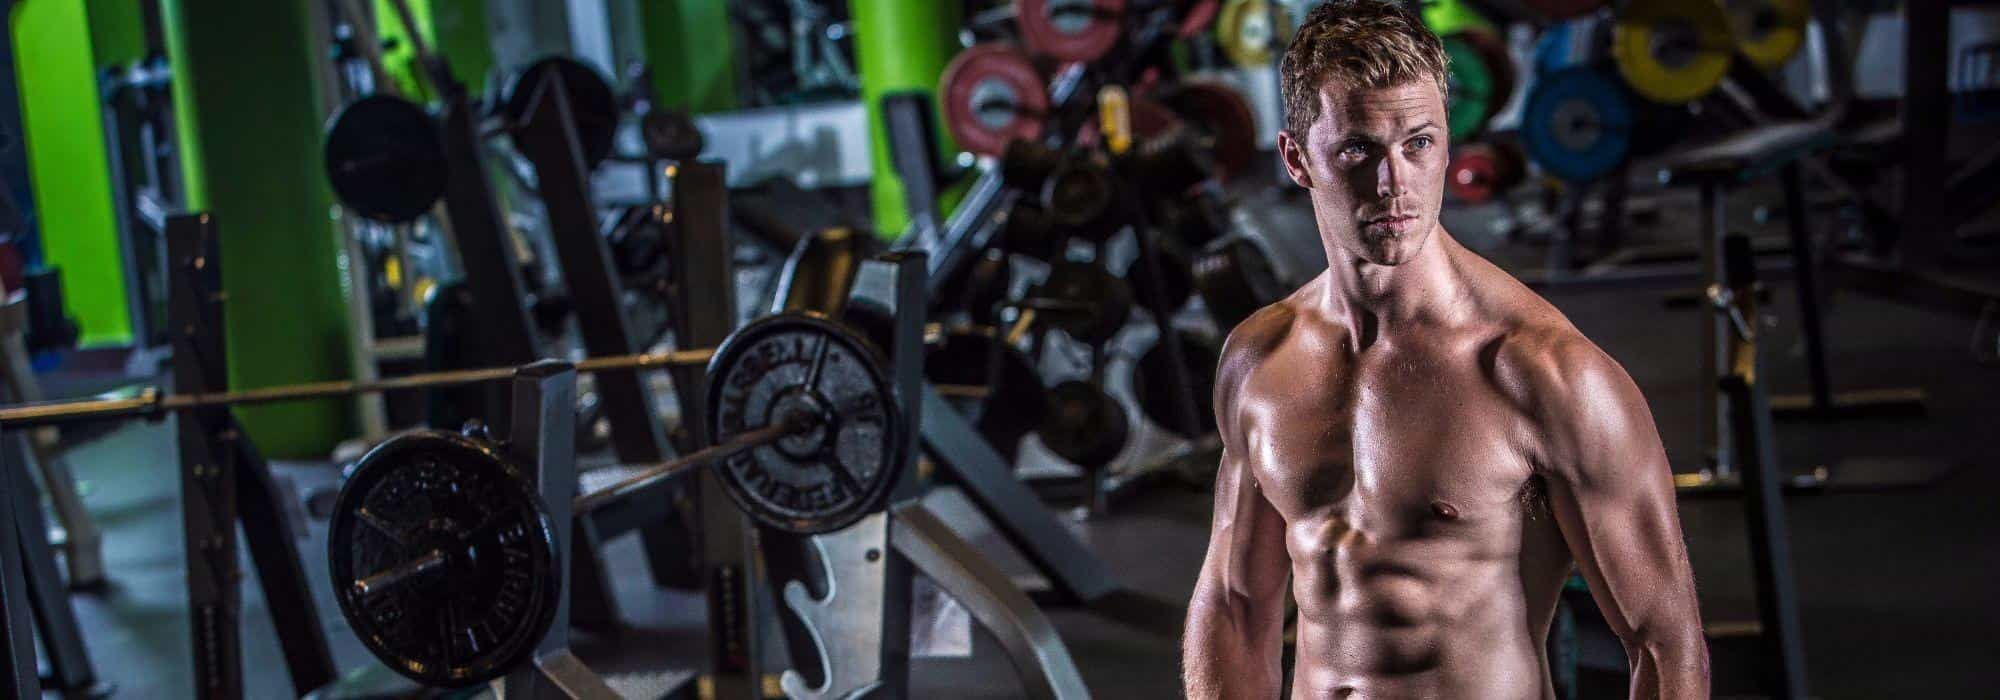 Right Bodybuilding Programme During a Cutting Diet